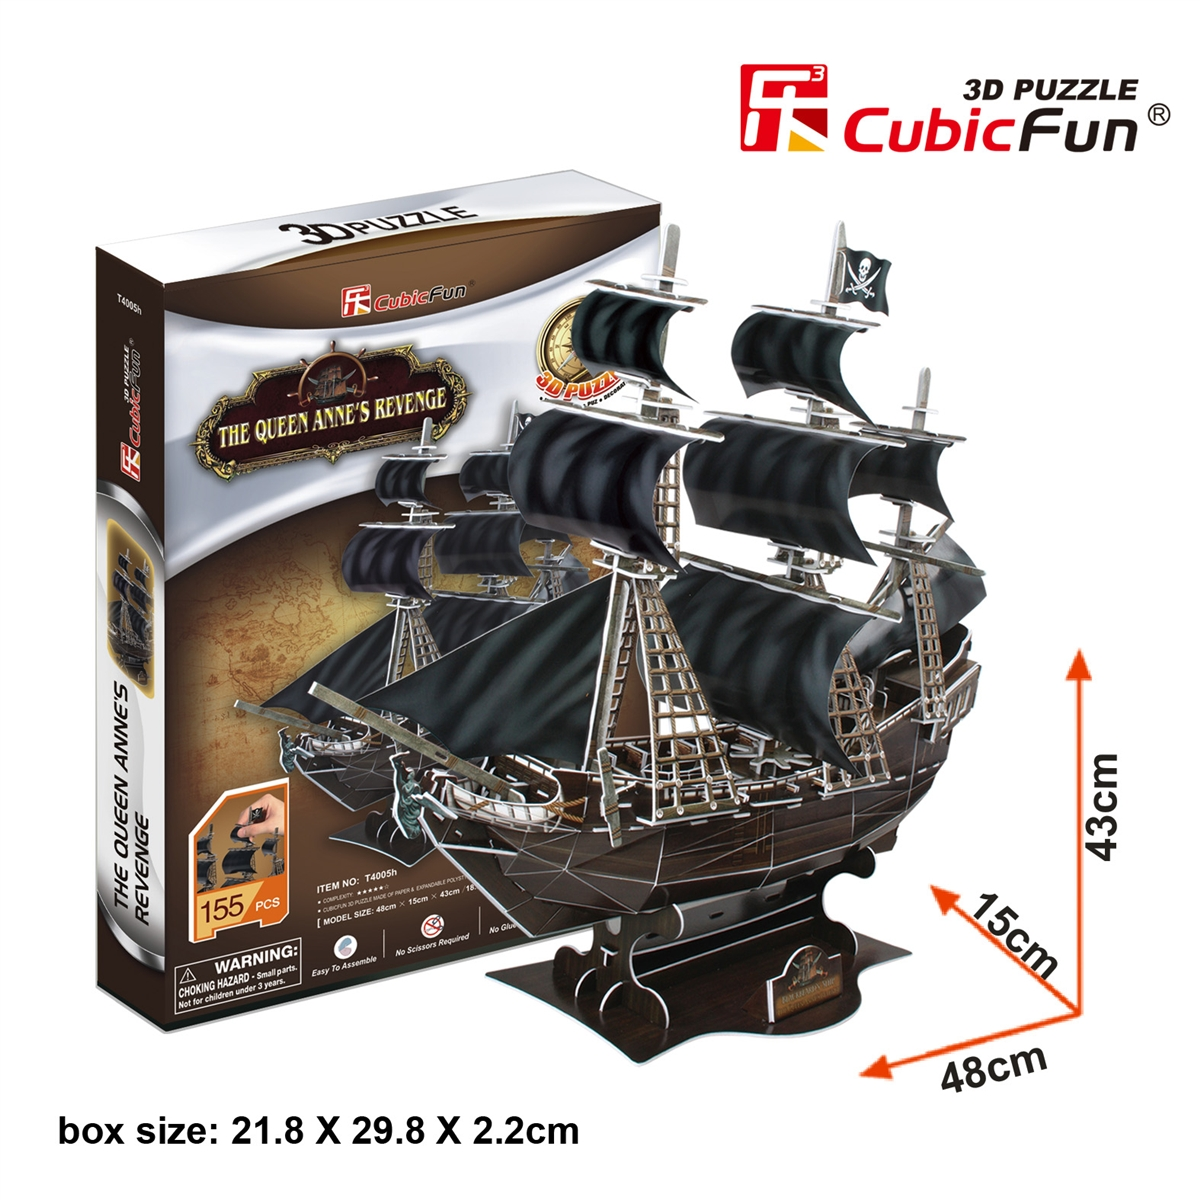 The Queen Anne's Revenge Total: 155 pcs Model Size: 48*15*42.5 cm.